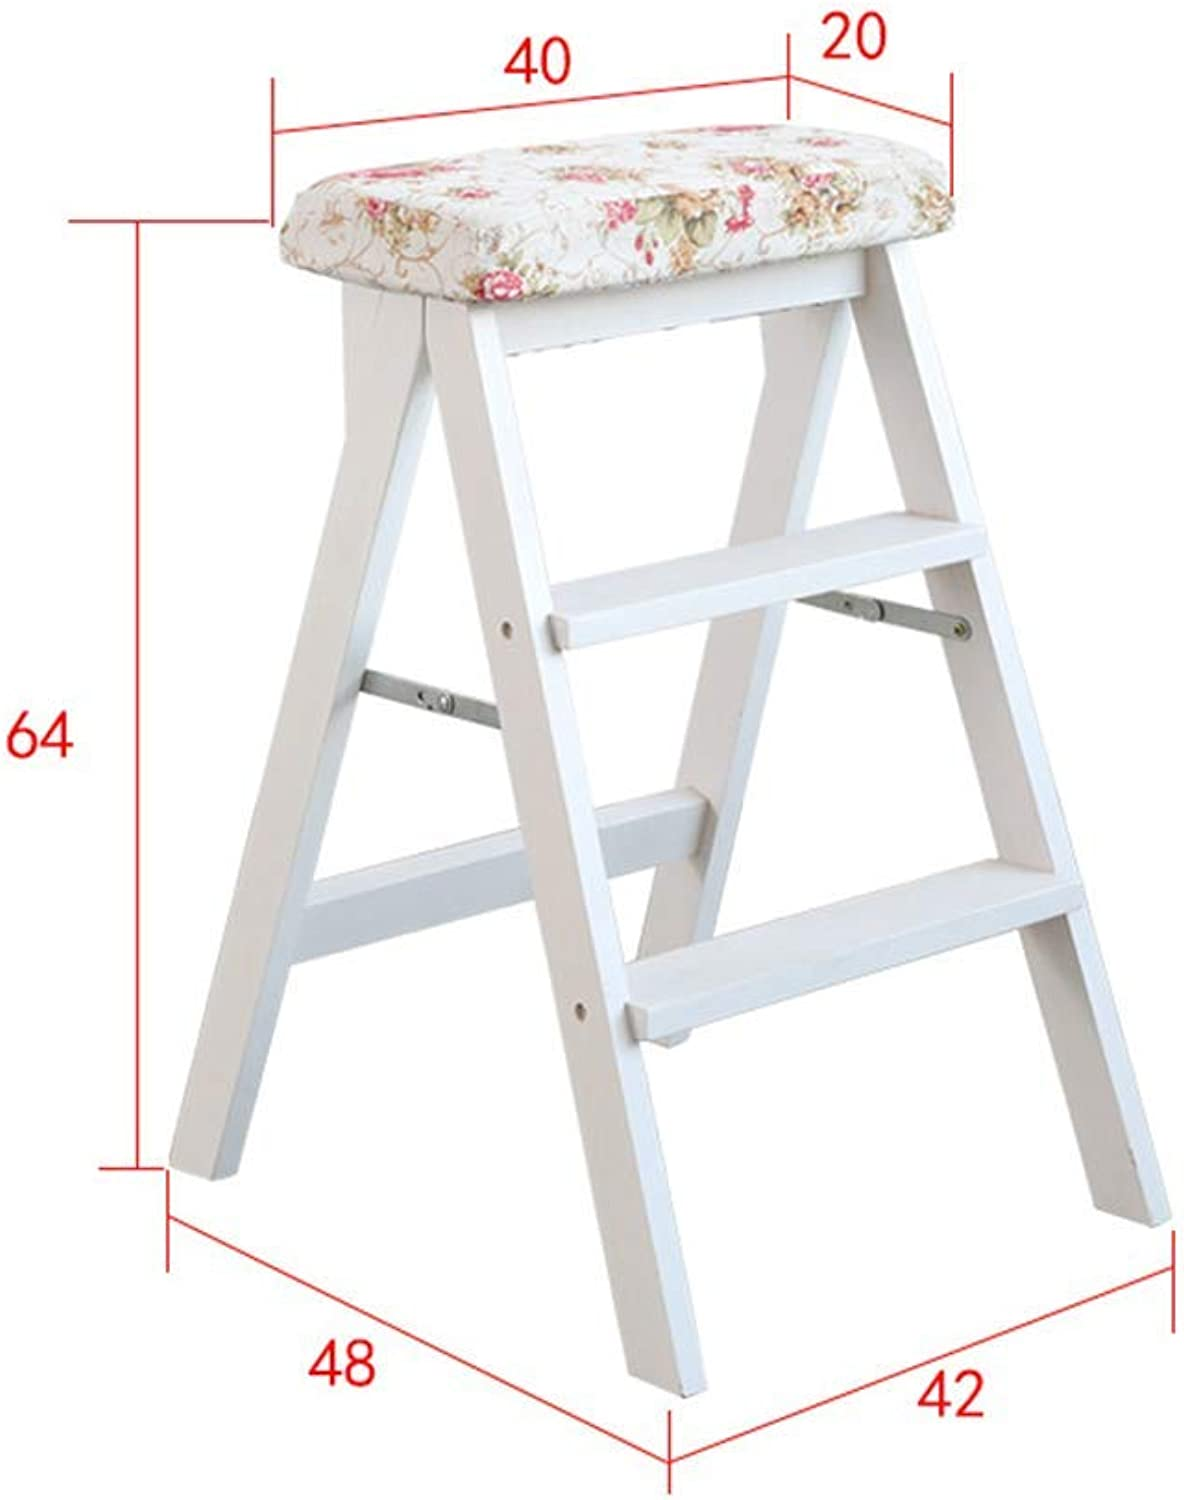 GLJJQMY Staircase Staircase Portable Folding Stool Climbing Stairs Solid Wood Chair Suitable for Kitchen Multi-Function Home Living Room Shrinking Ladder (color   Flower)